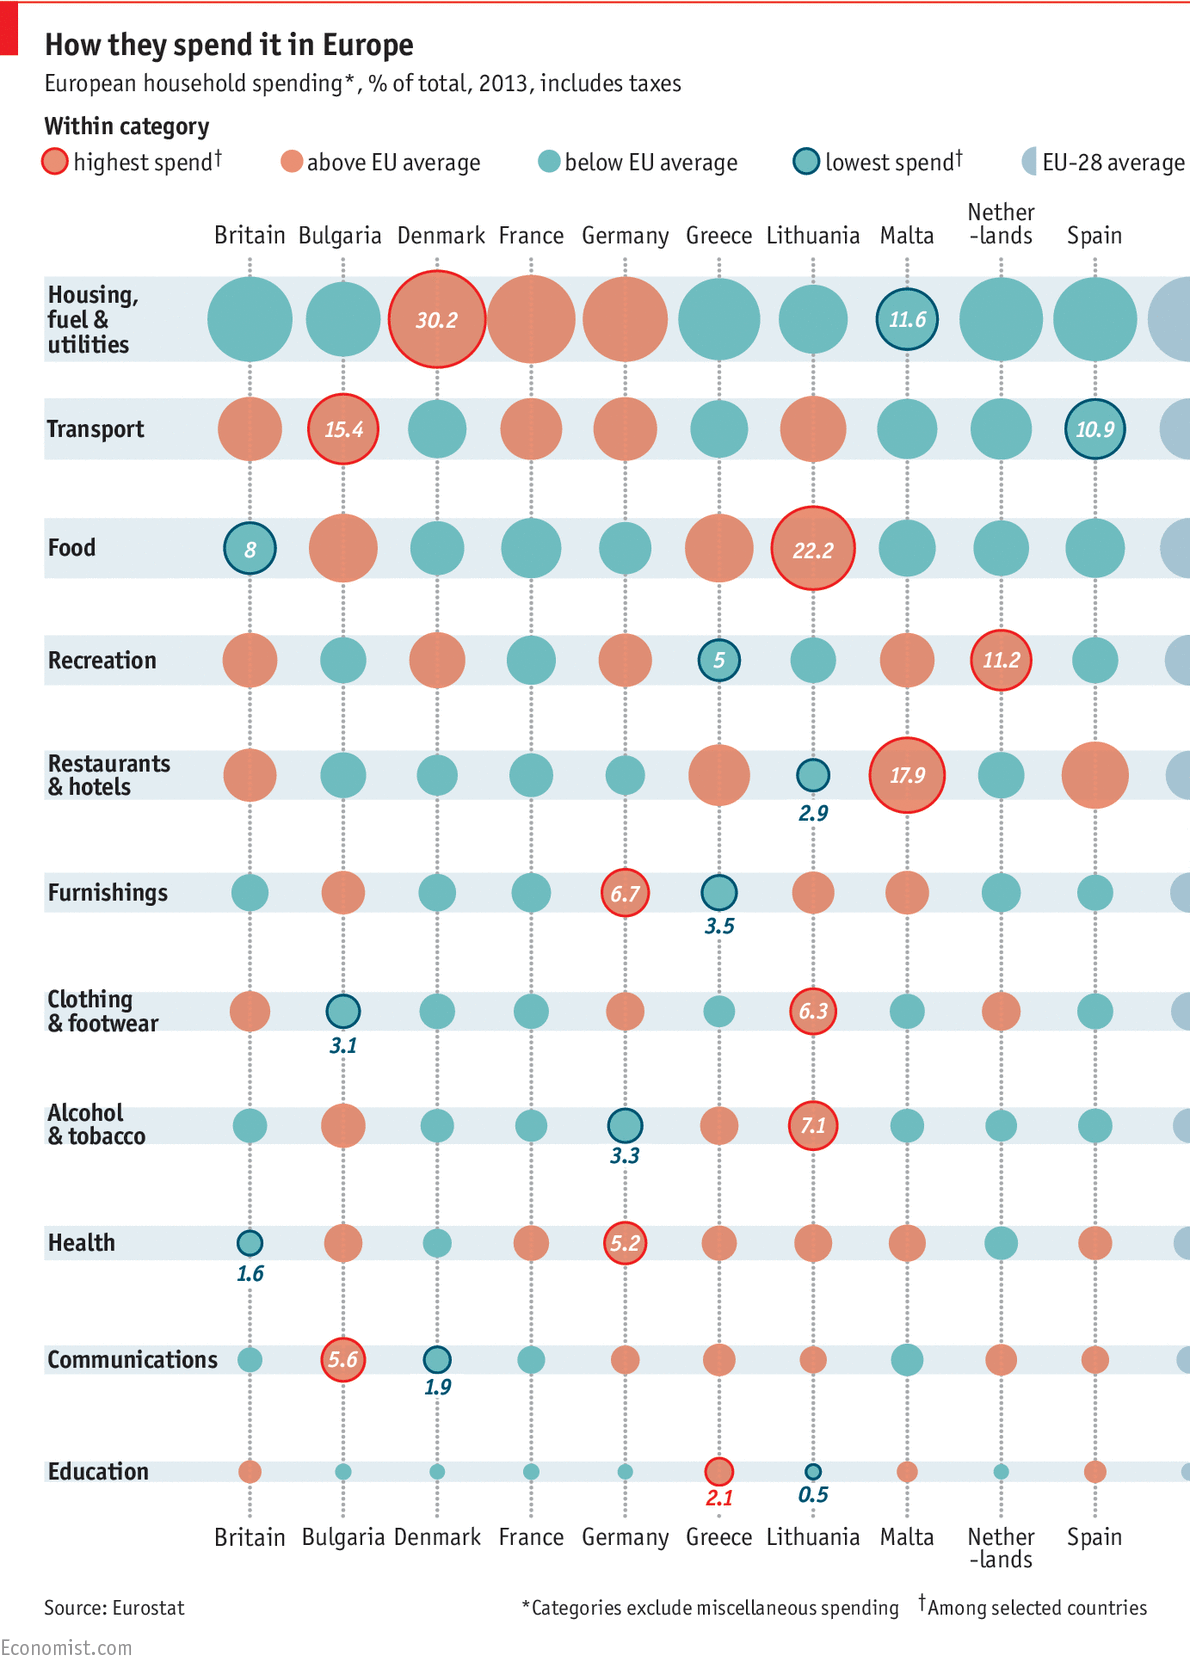 How much money is spent on clothing each year?